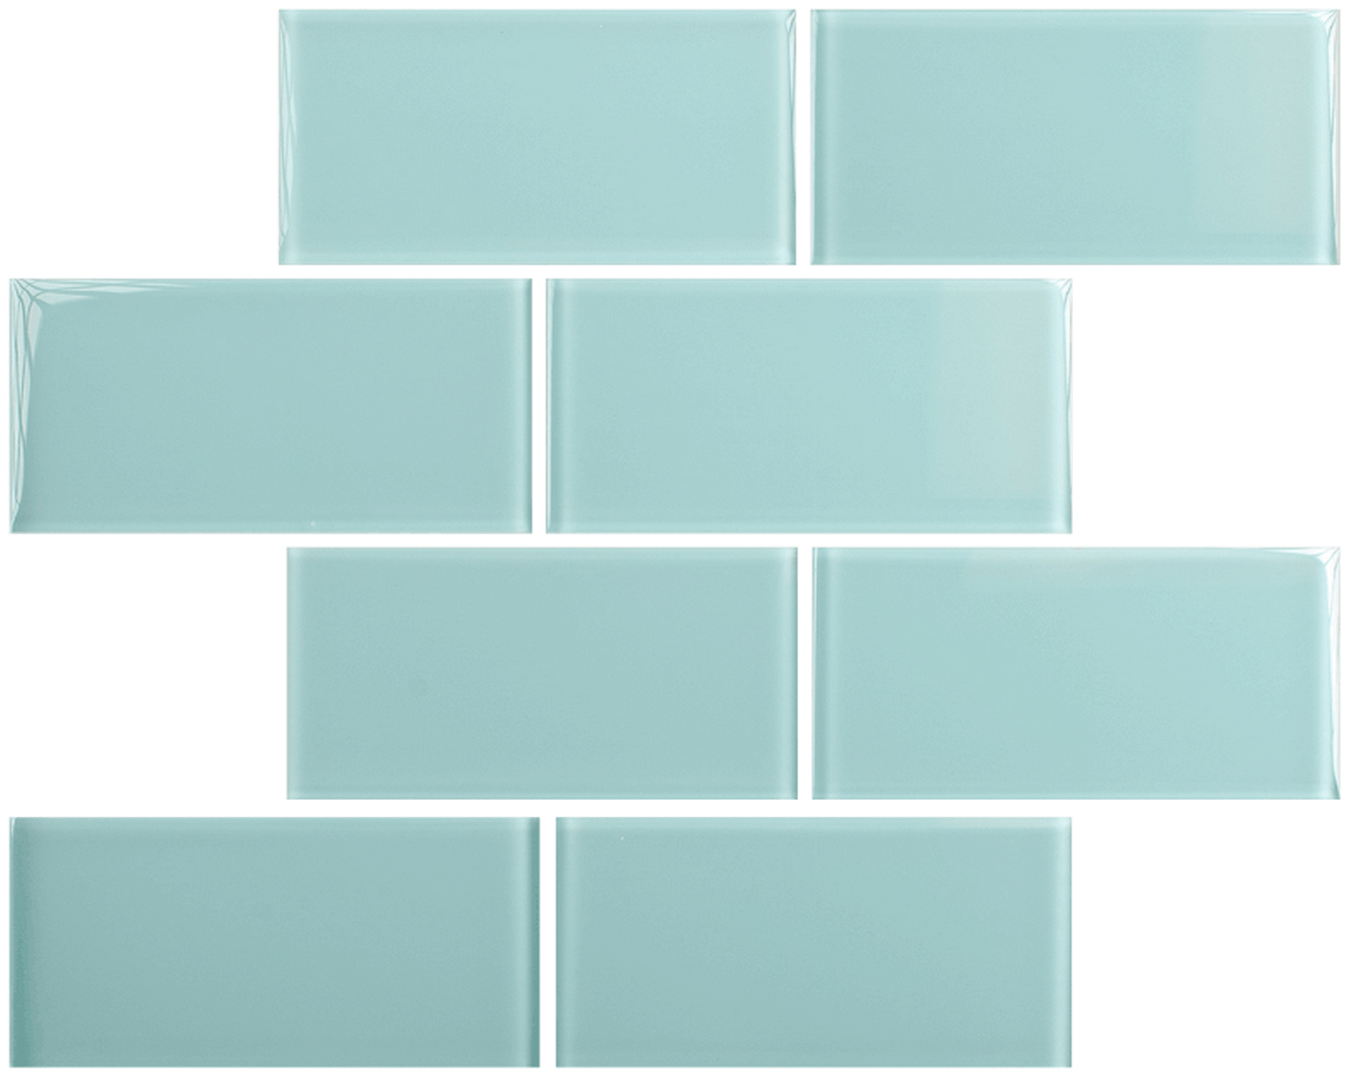 Crystal 3 x 6 Subway Tiles Marine Mist